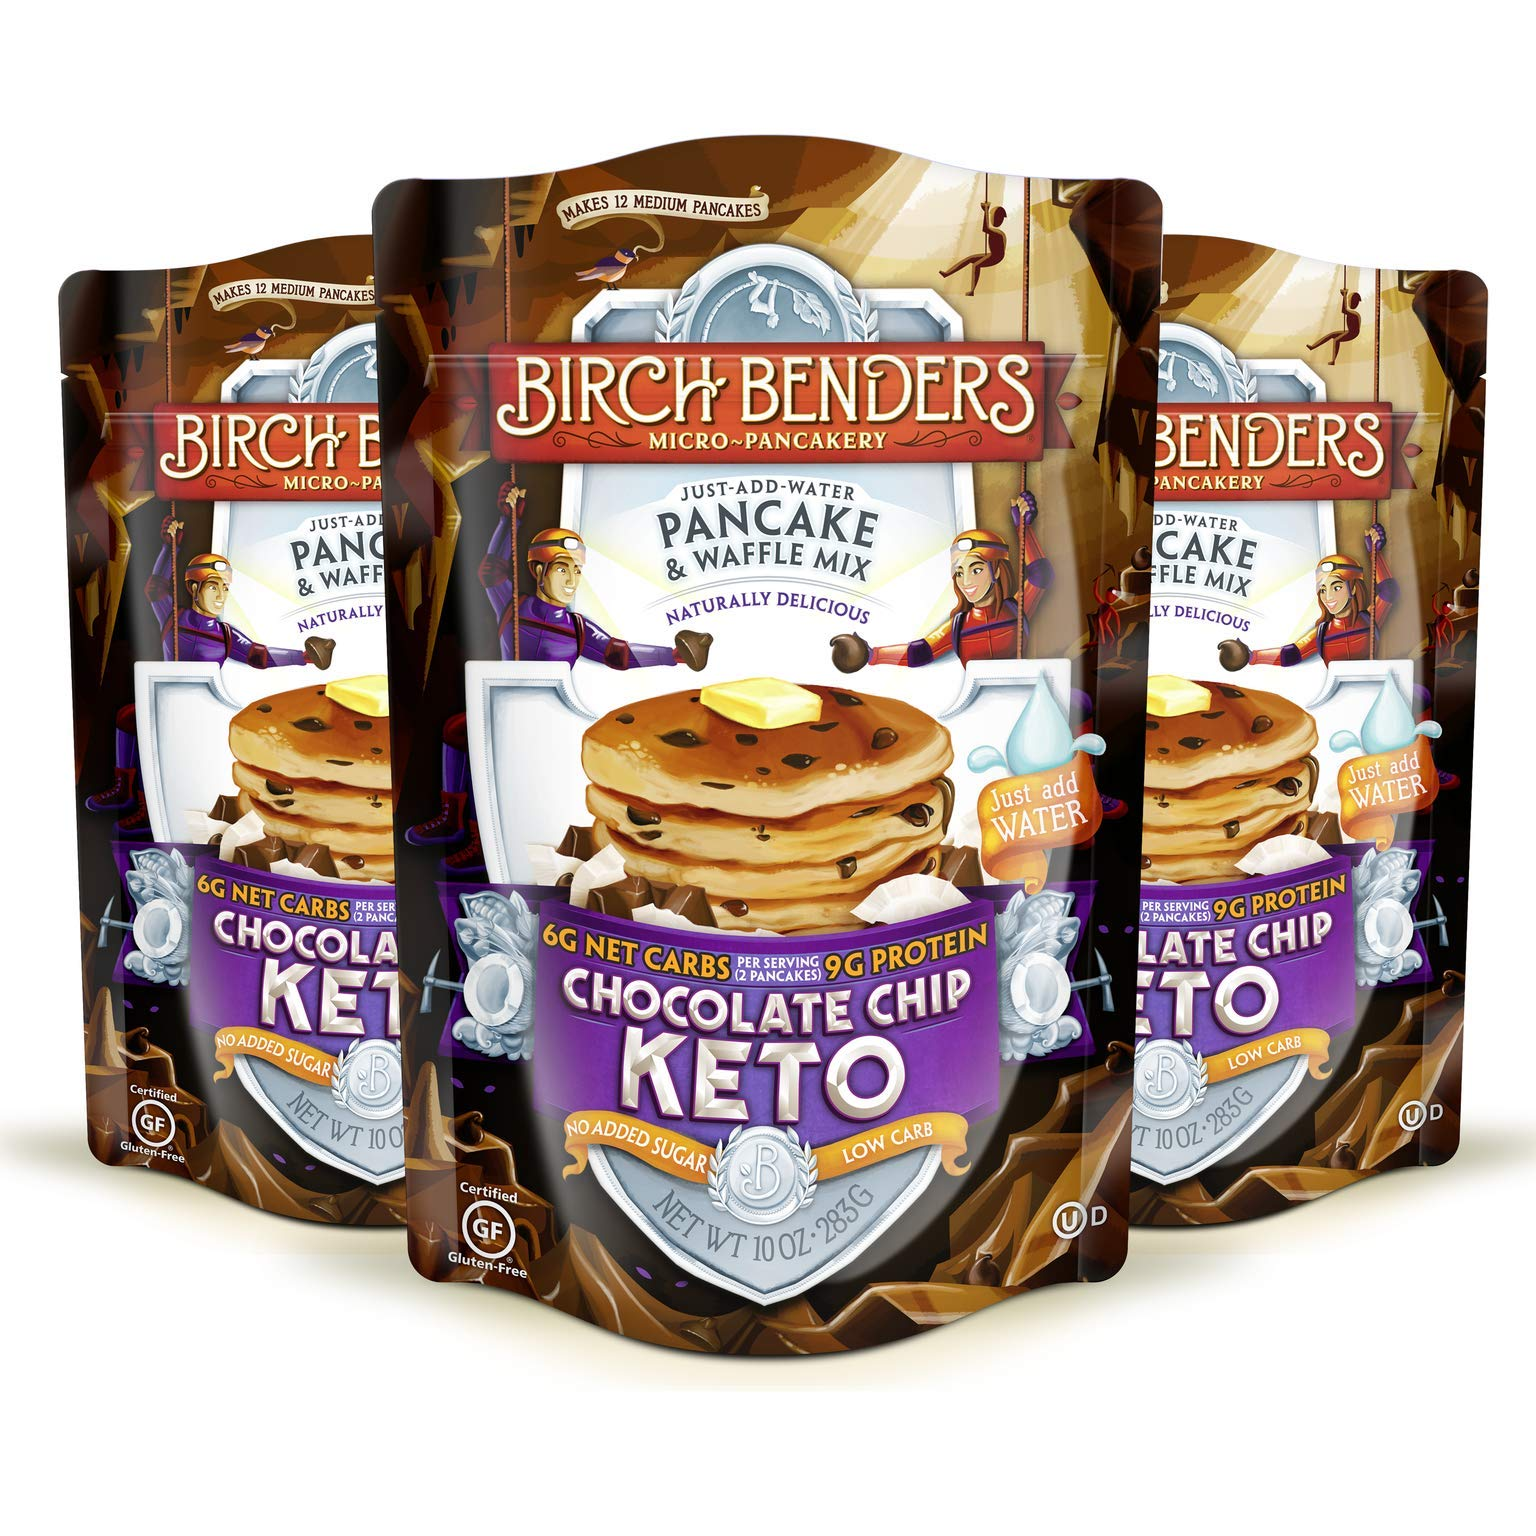 Birch Benders Keto Chocolate Chip Pancake & Waffle Mix with Almond/Coconut & Cassava Flour, 3 Count by Birch Benders (Image #1)